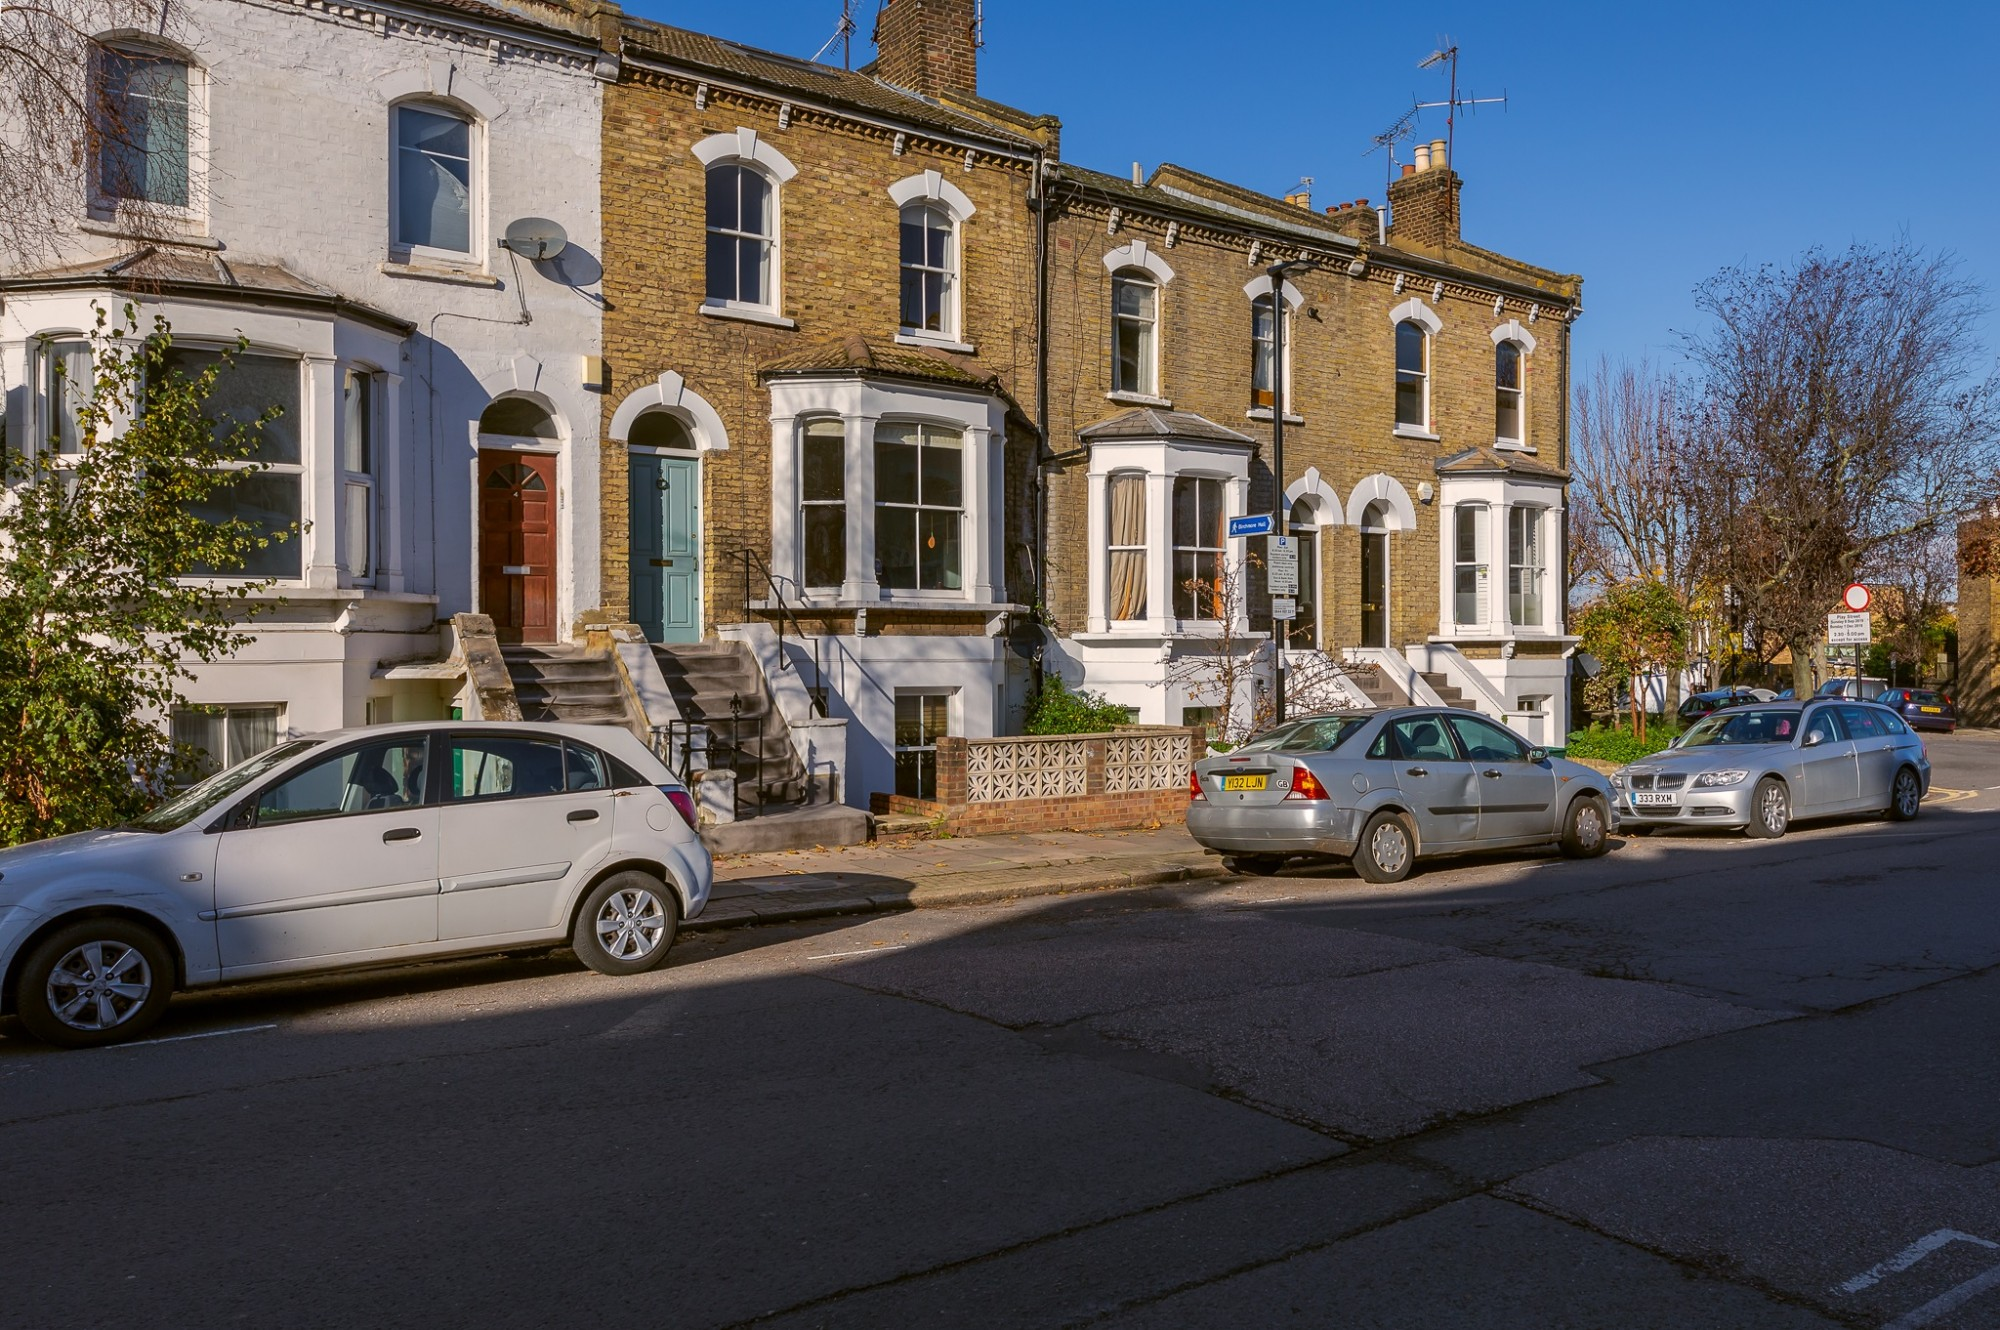 Images for Riversdale Road N5 2JP EAID:931013c273837aec744cf2e7889cb460 BID:3